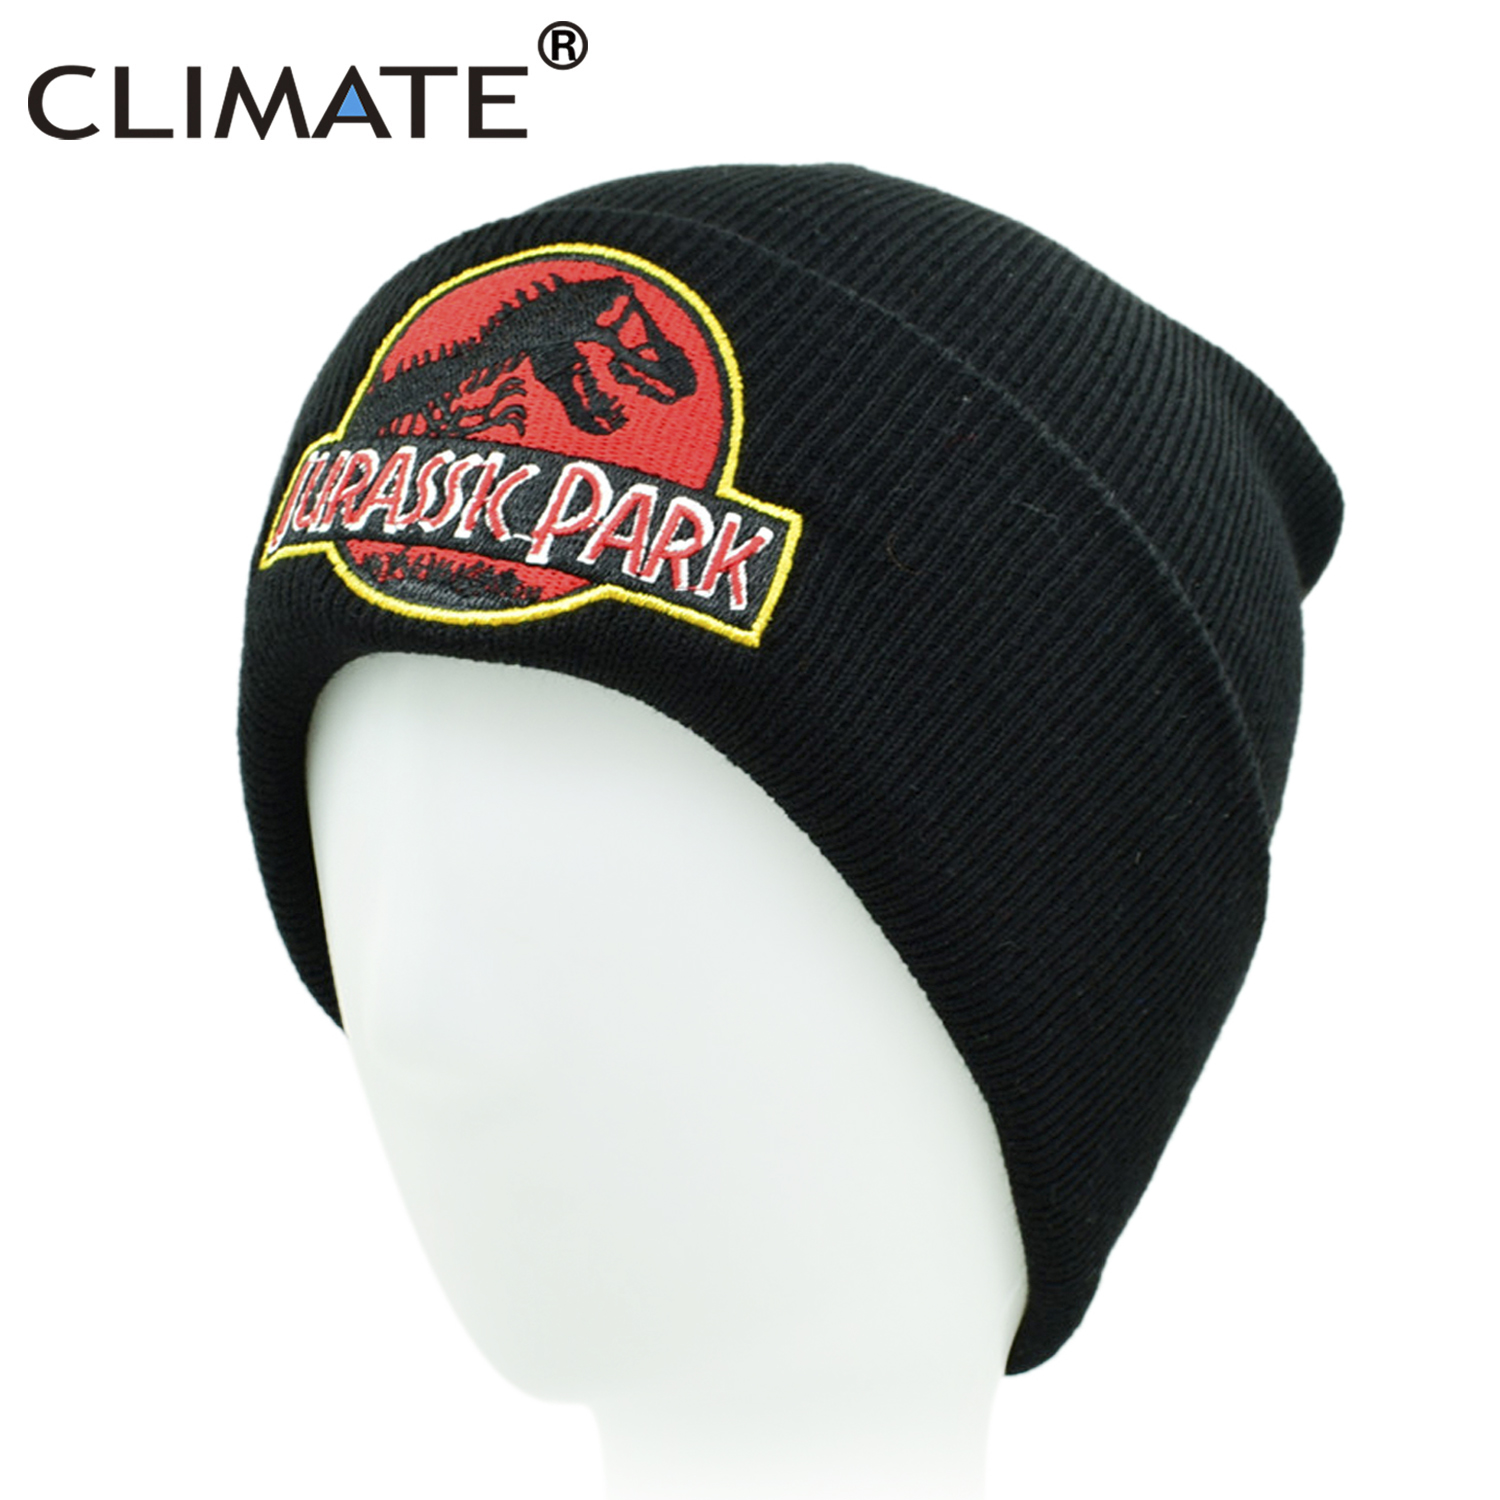 BOBONC Grimlock Jurassic Print Polyester MadeCamper Hats for Men /& Women Sports Outdoor Jurassic